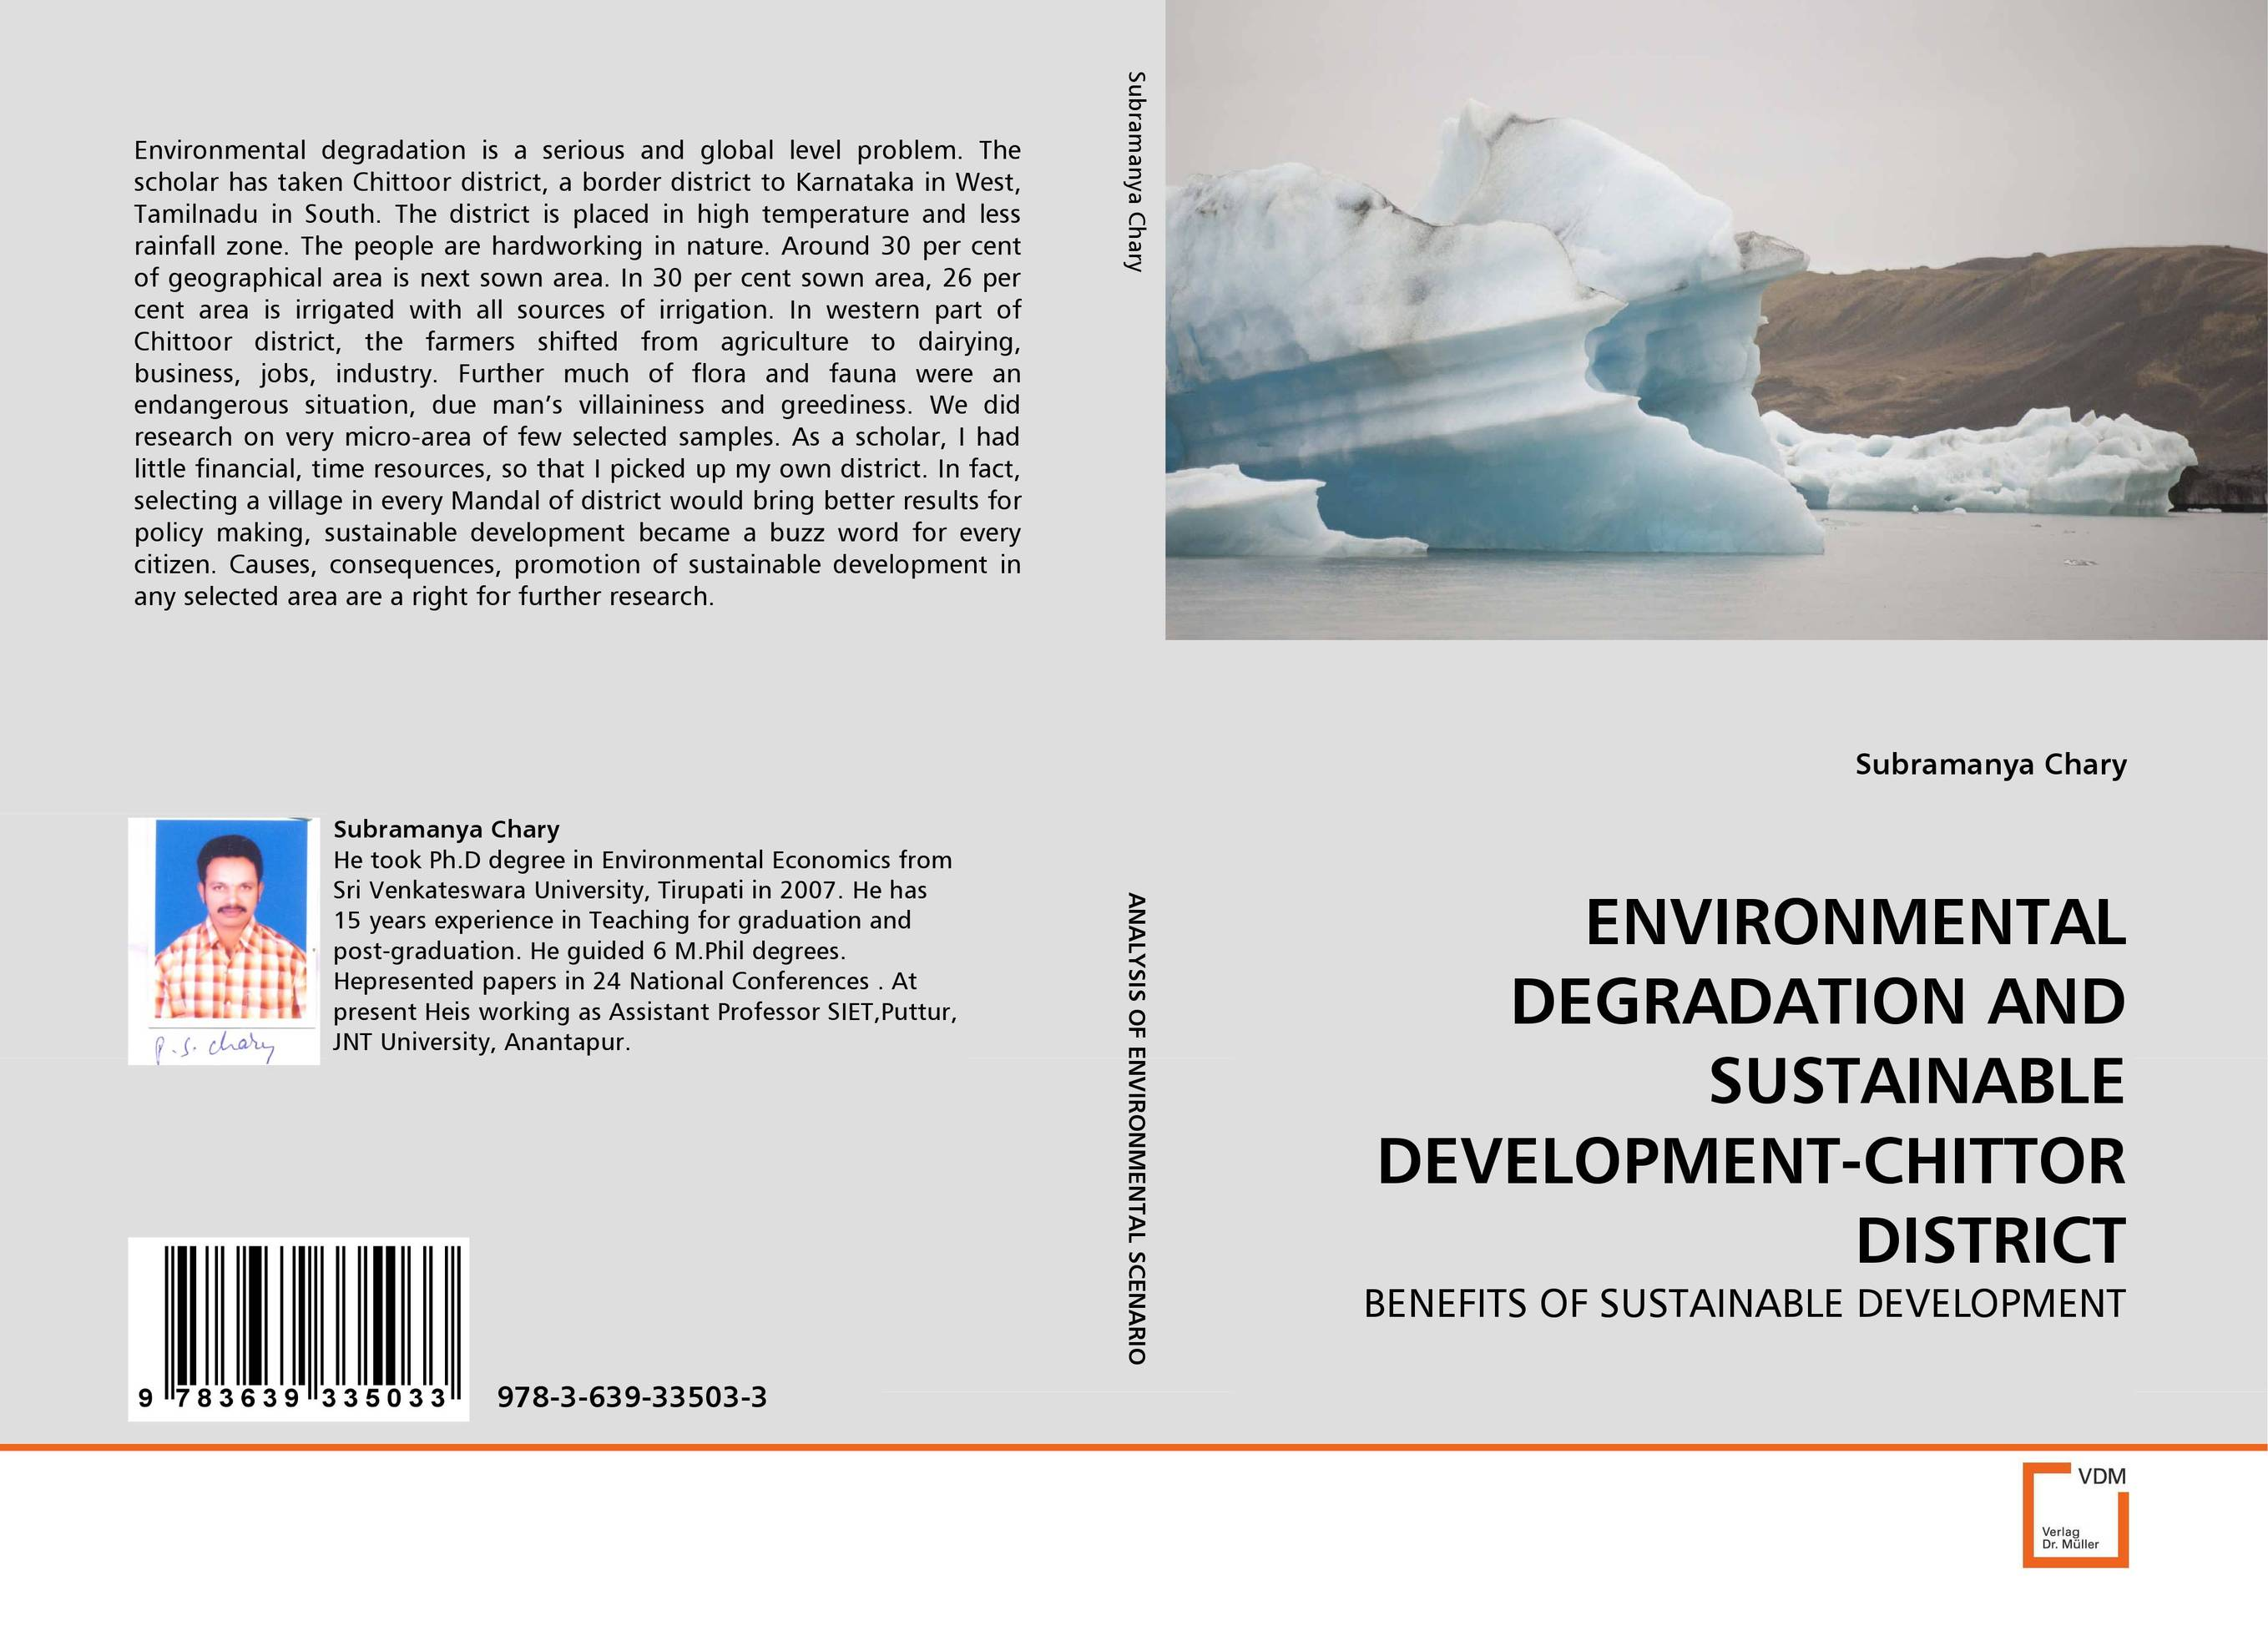 ENVIRONMENTAL DEGRADATION AND SUSTAINABLE DEVELOPMENT-CHITTOR DISTRICT environmental ethics and sustainable development